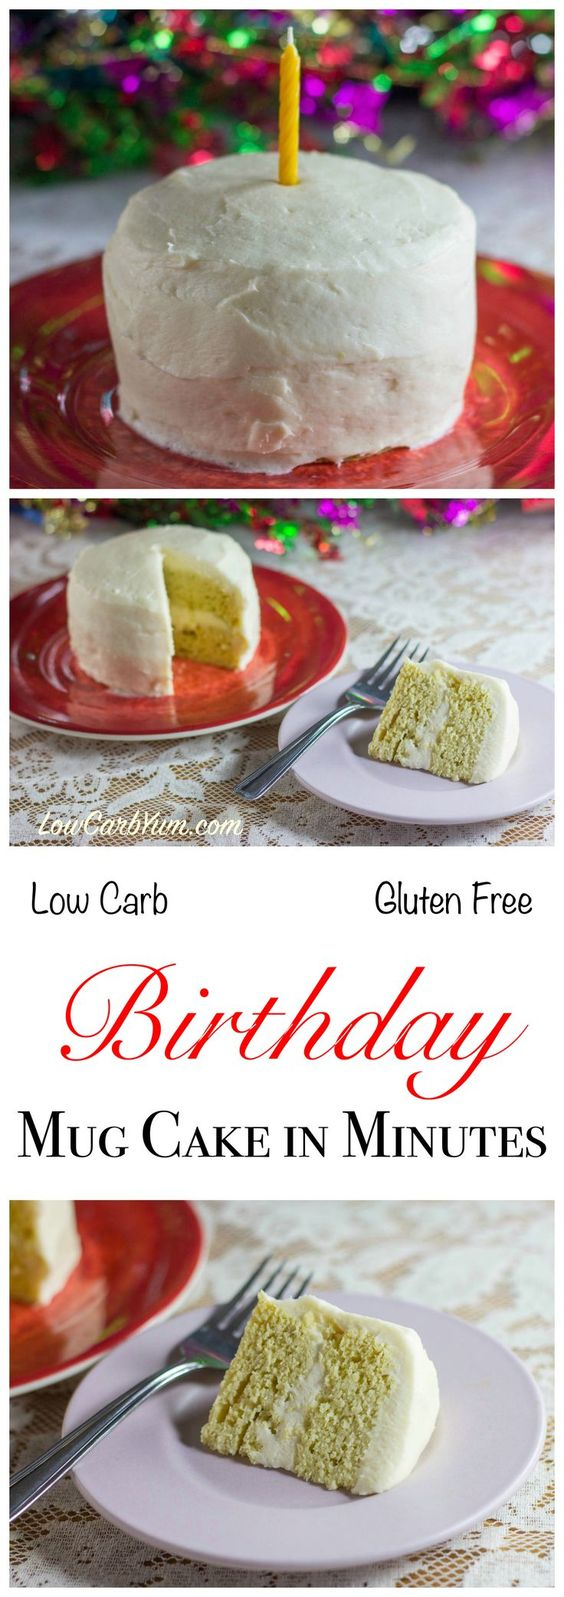 This low carb and gluten free birthday mug cake bakes in only 2 ...